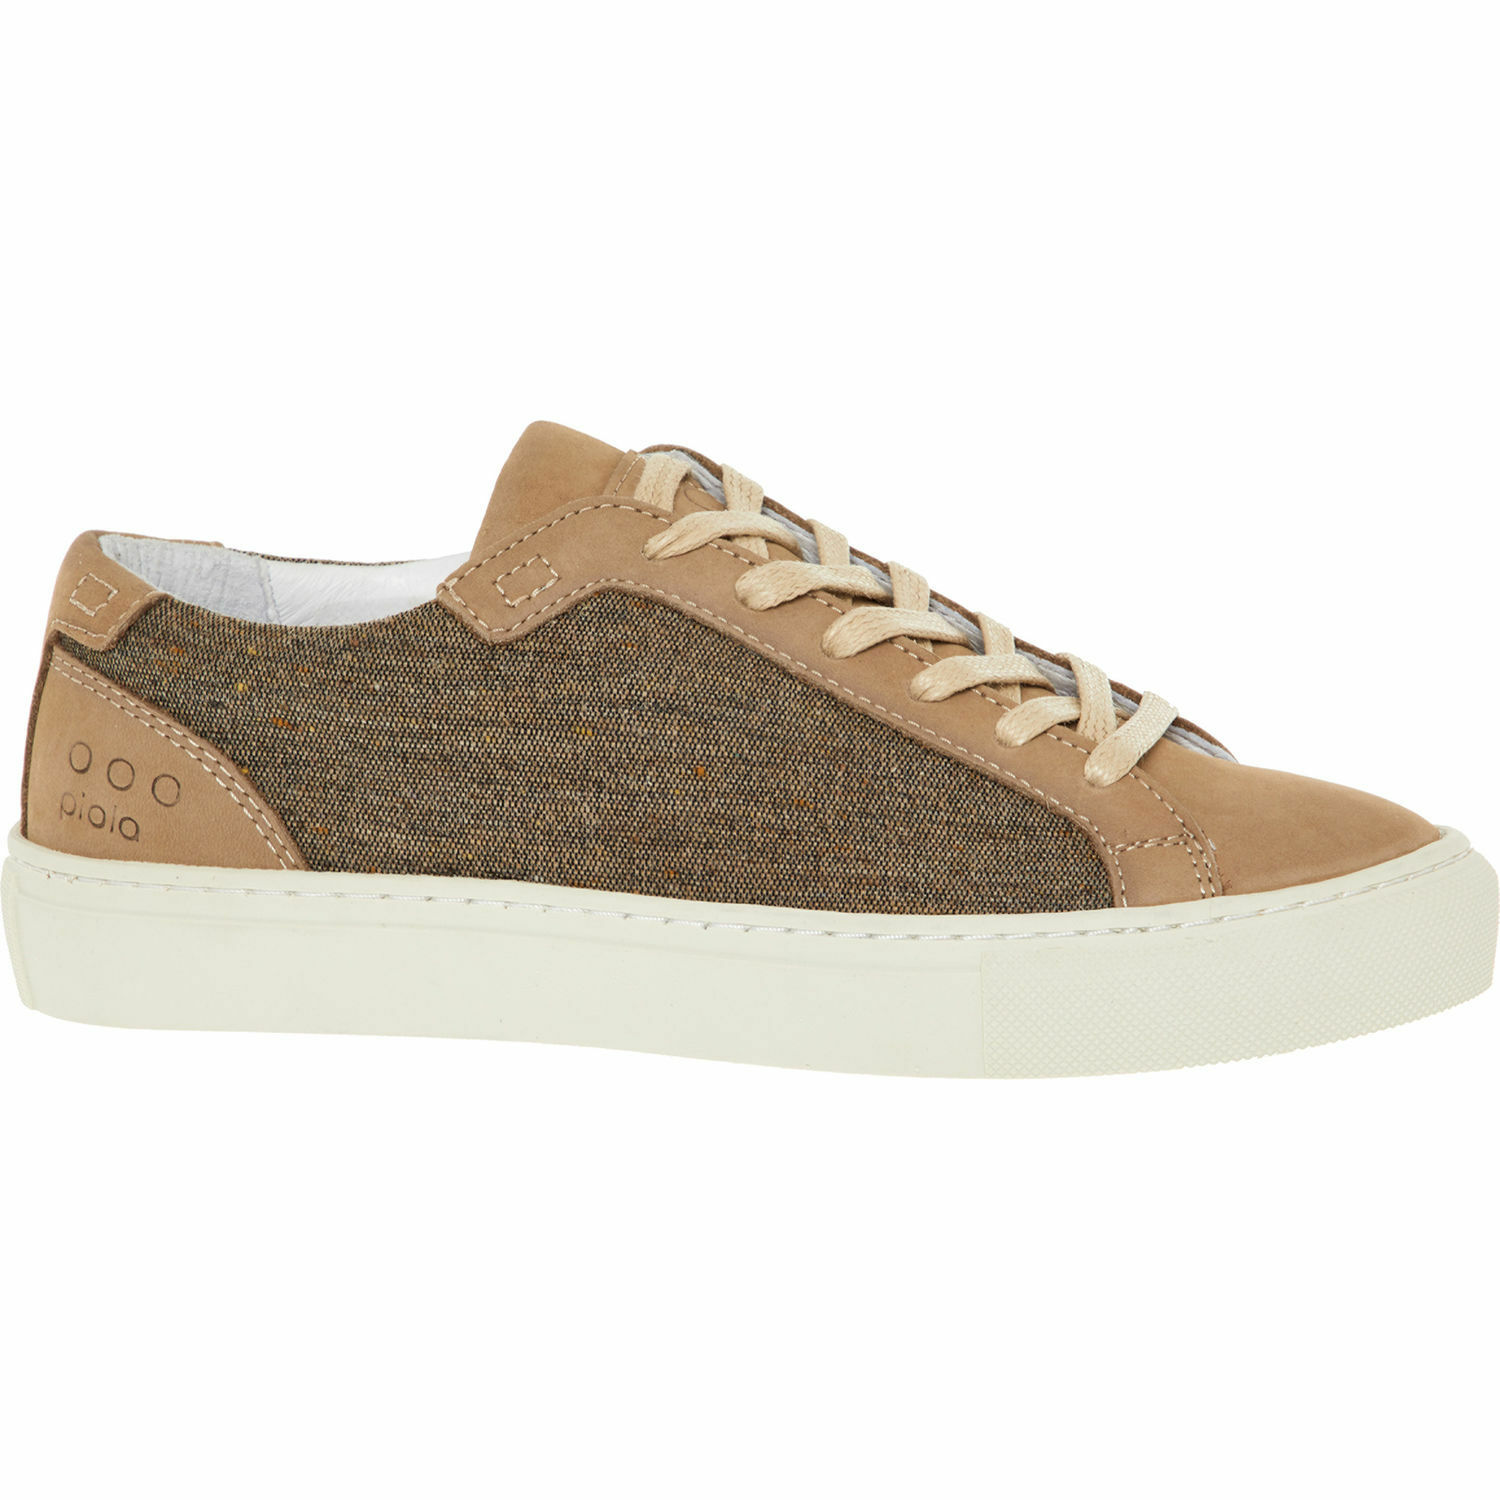 New PIOLA ICA Lady Beige braun Felted Wool & Leather Trainers schuhe Turnschuhe UK4